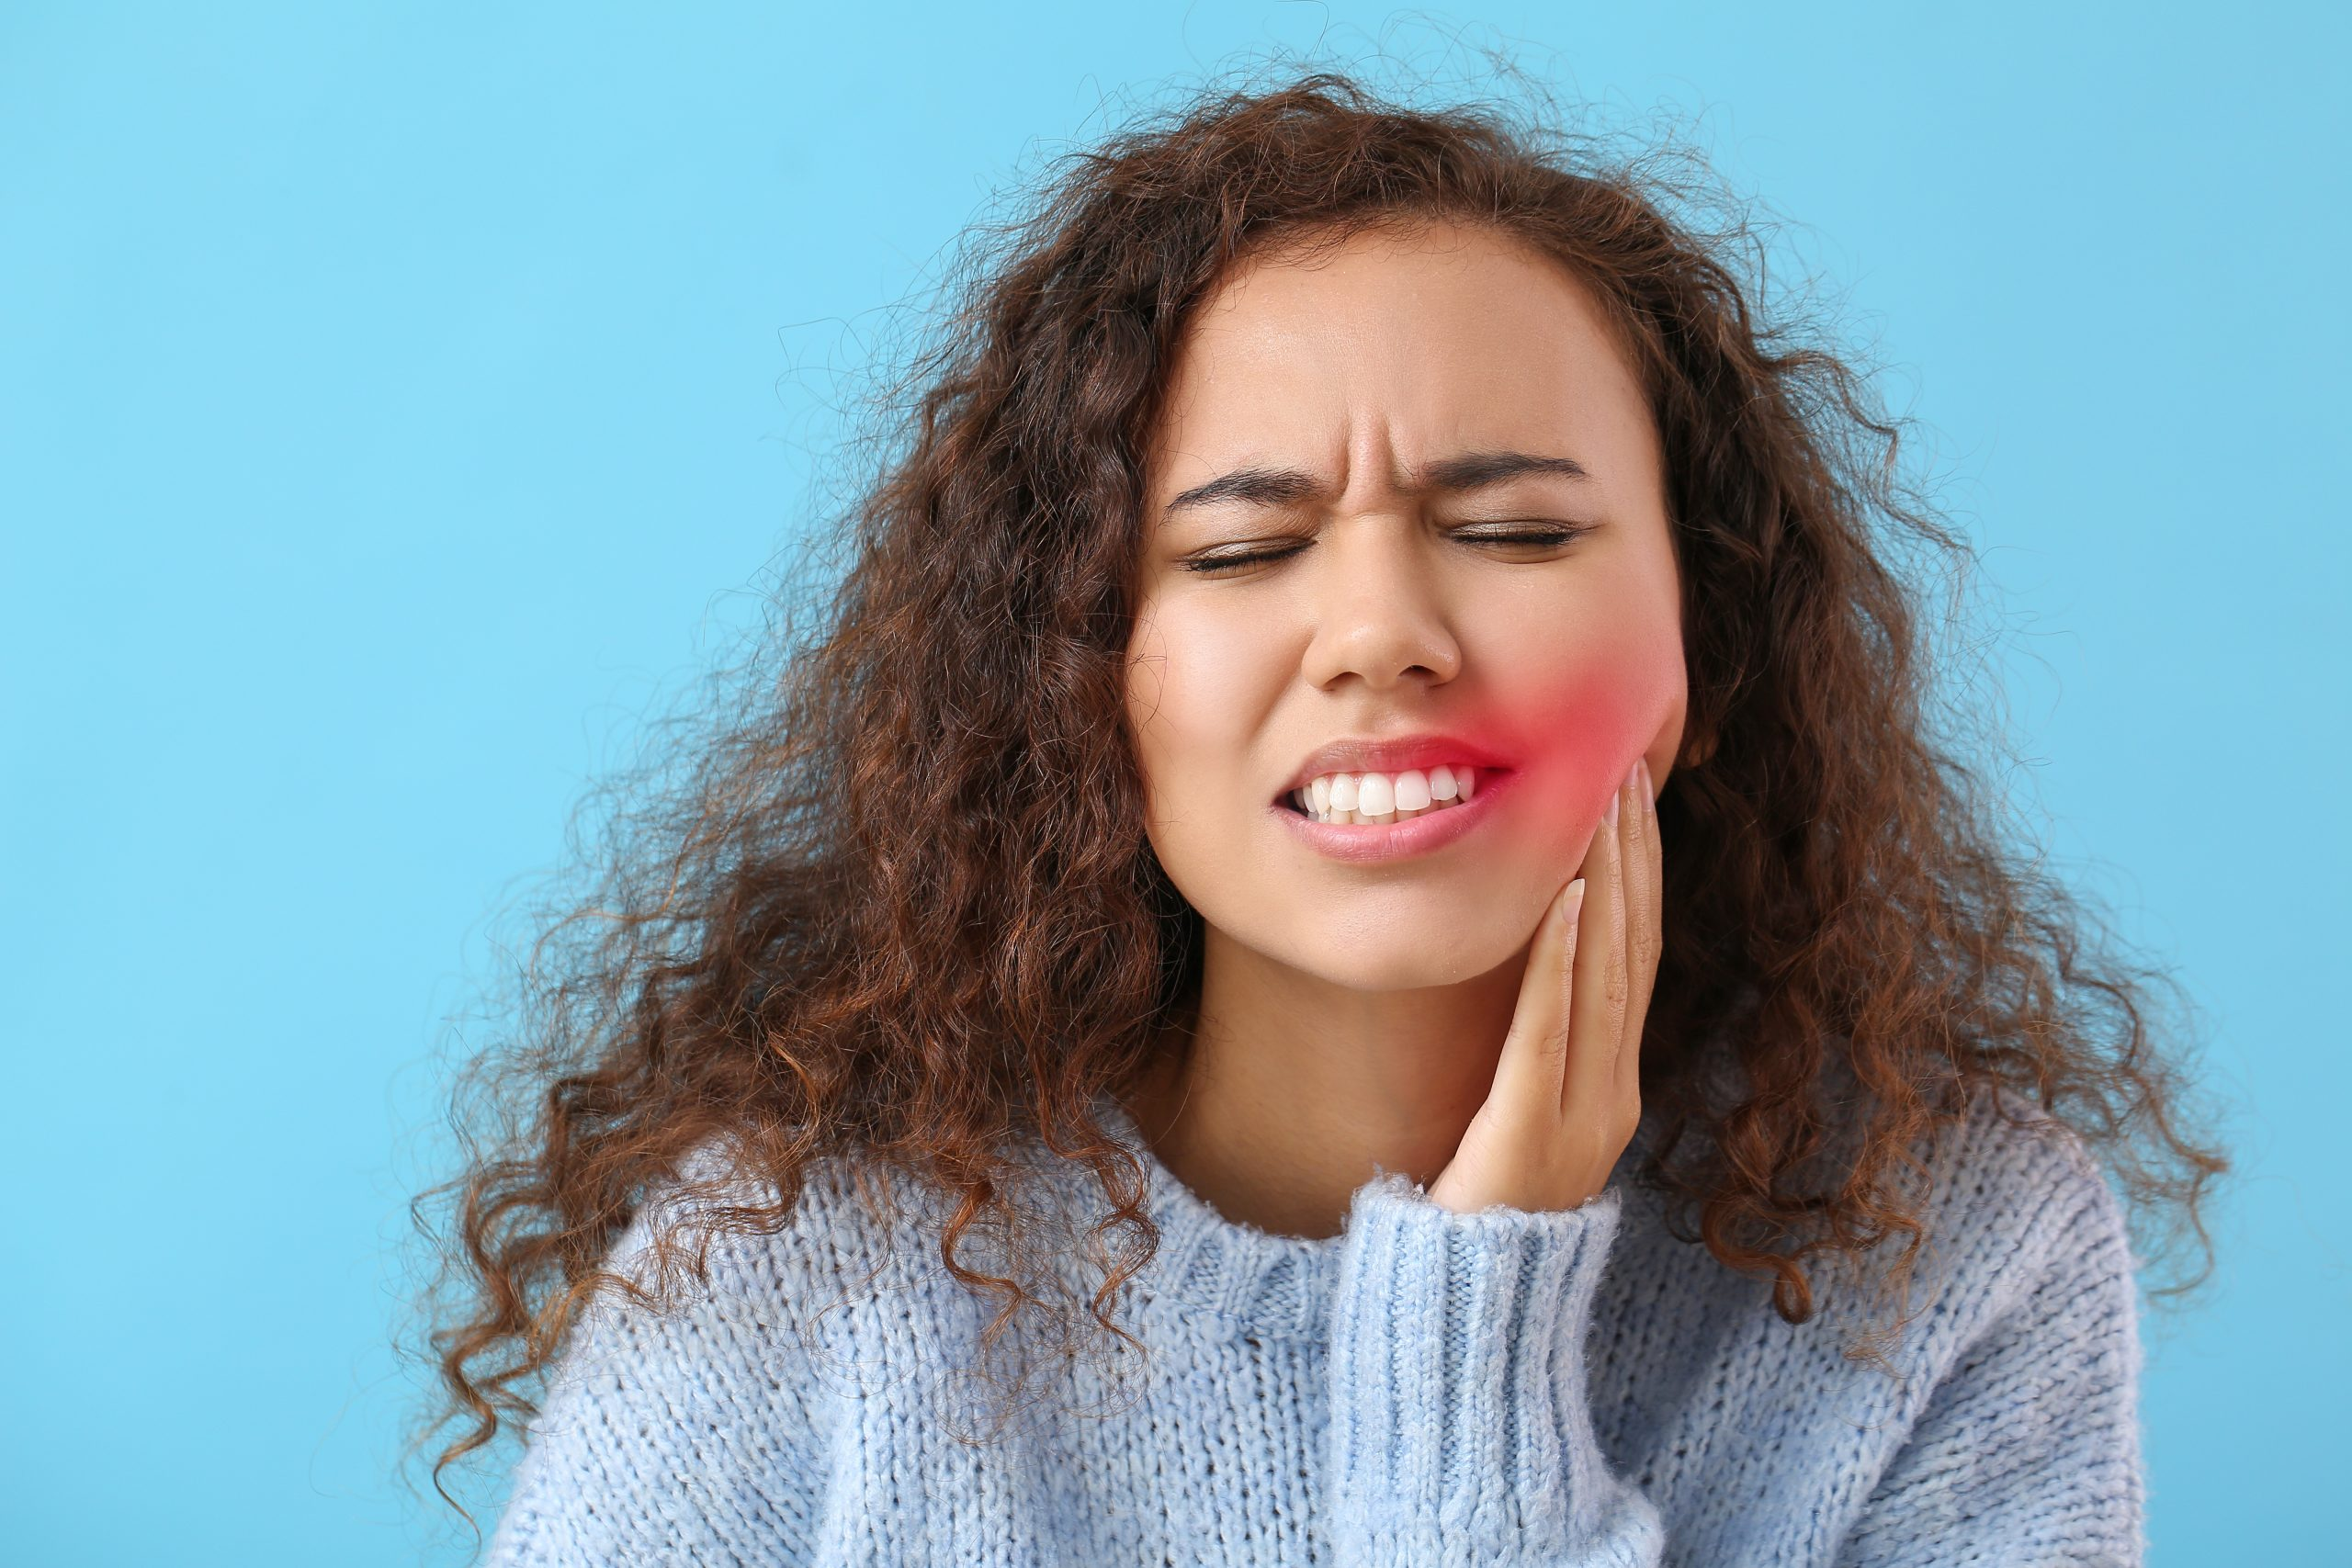 African-American woman suffering from tooth ache on color background